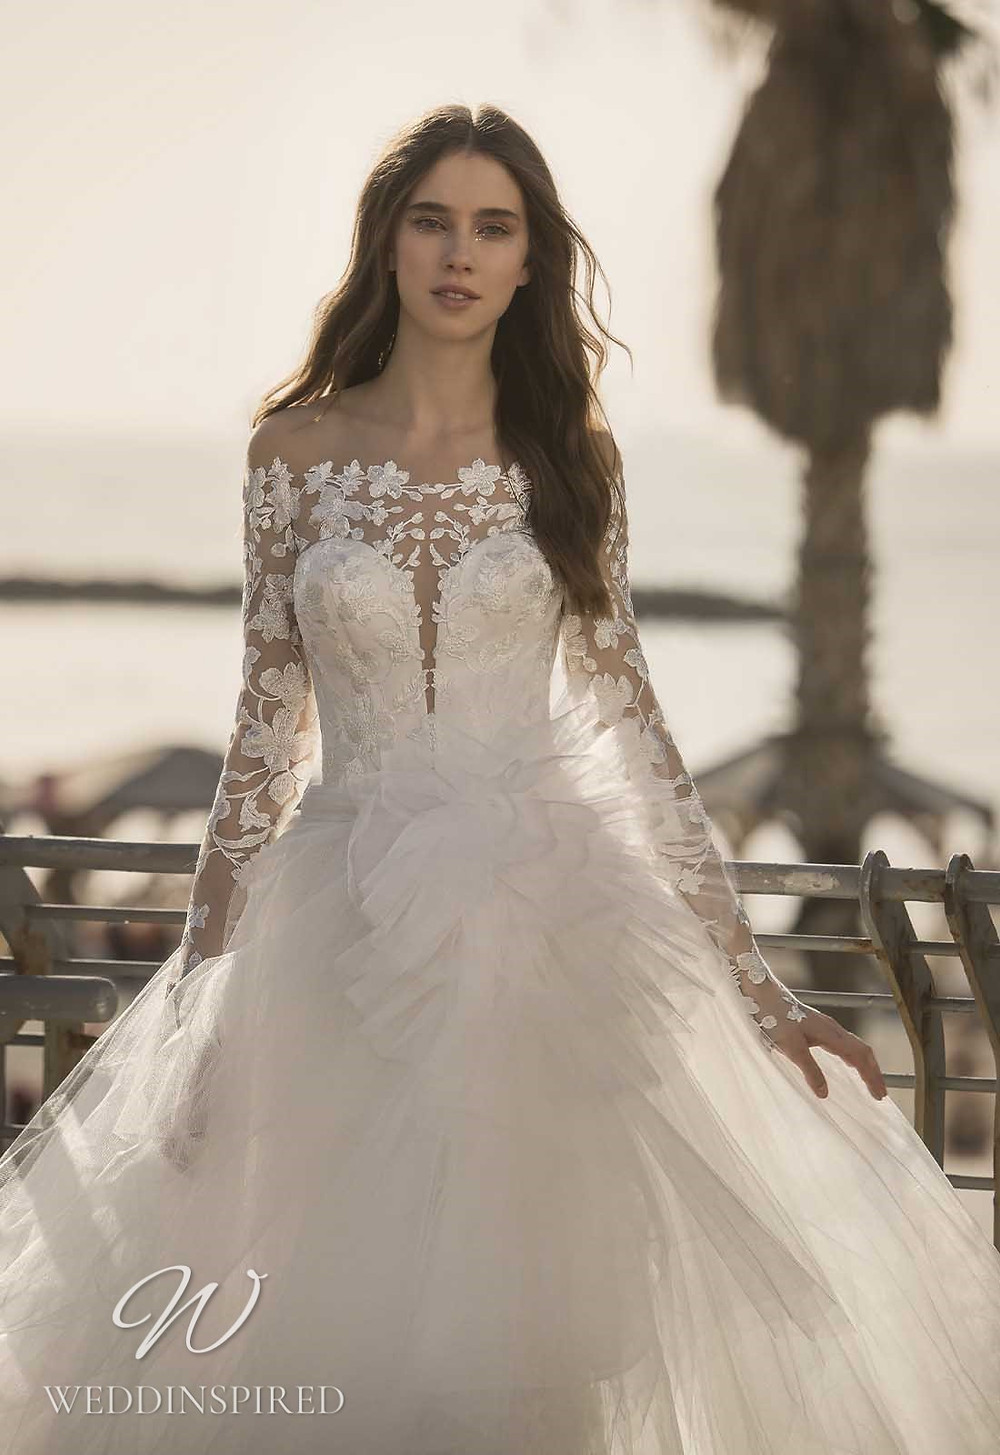 A Pnina Tornai 2021 off the shoulder lace and tulle A-line wedding dress